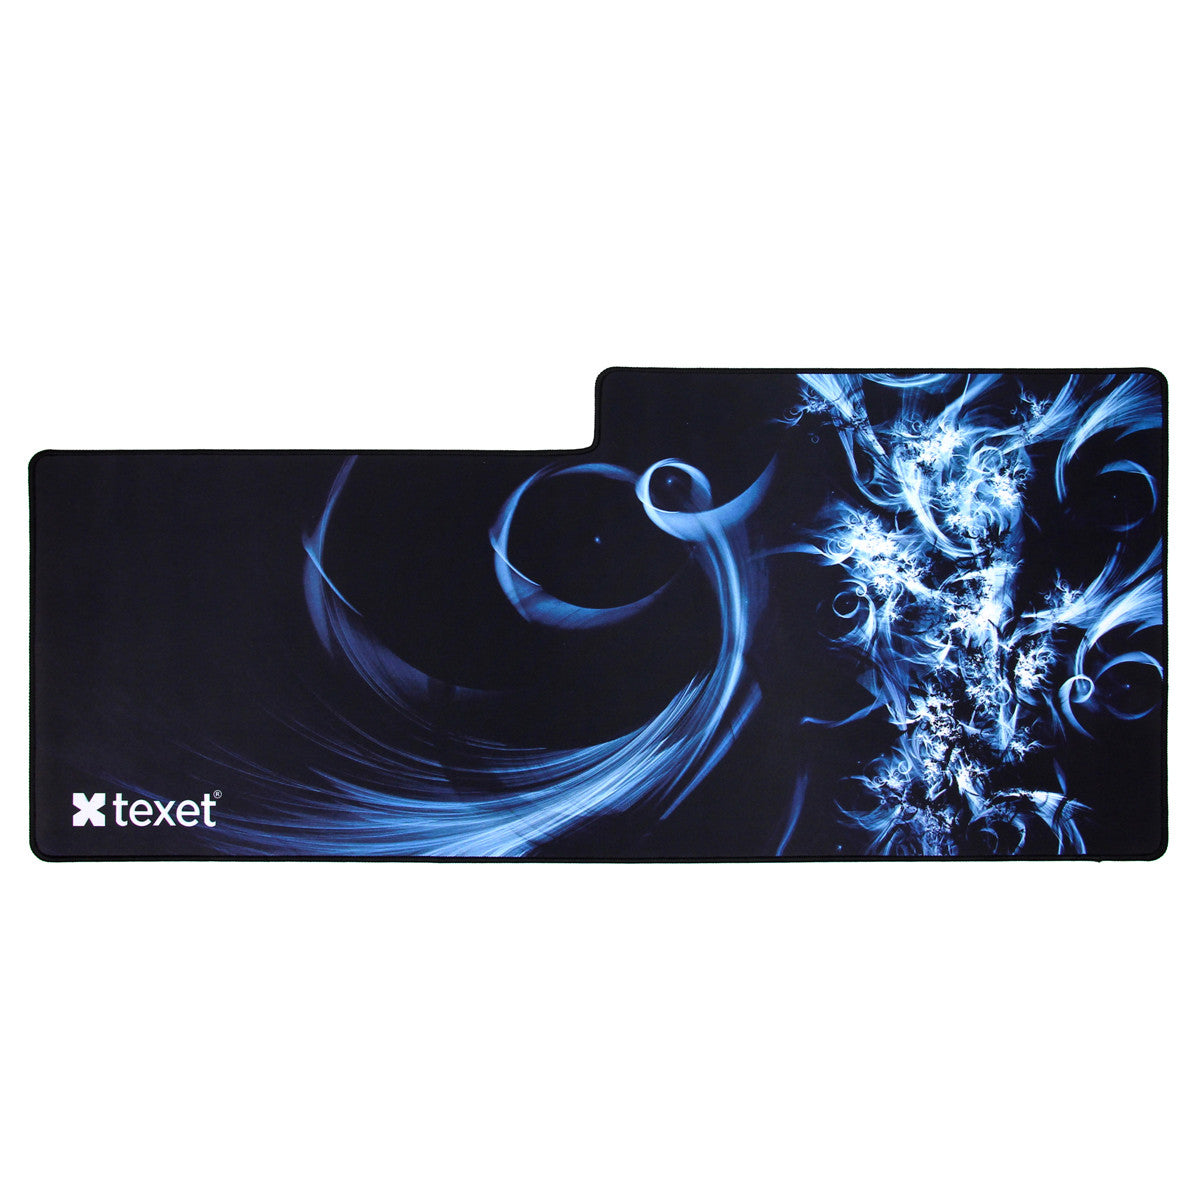 XXXL Gaming Mouse Pad